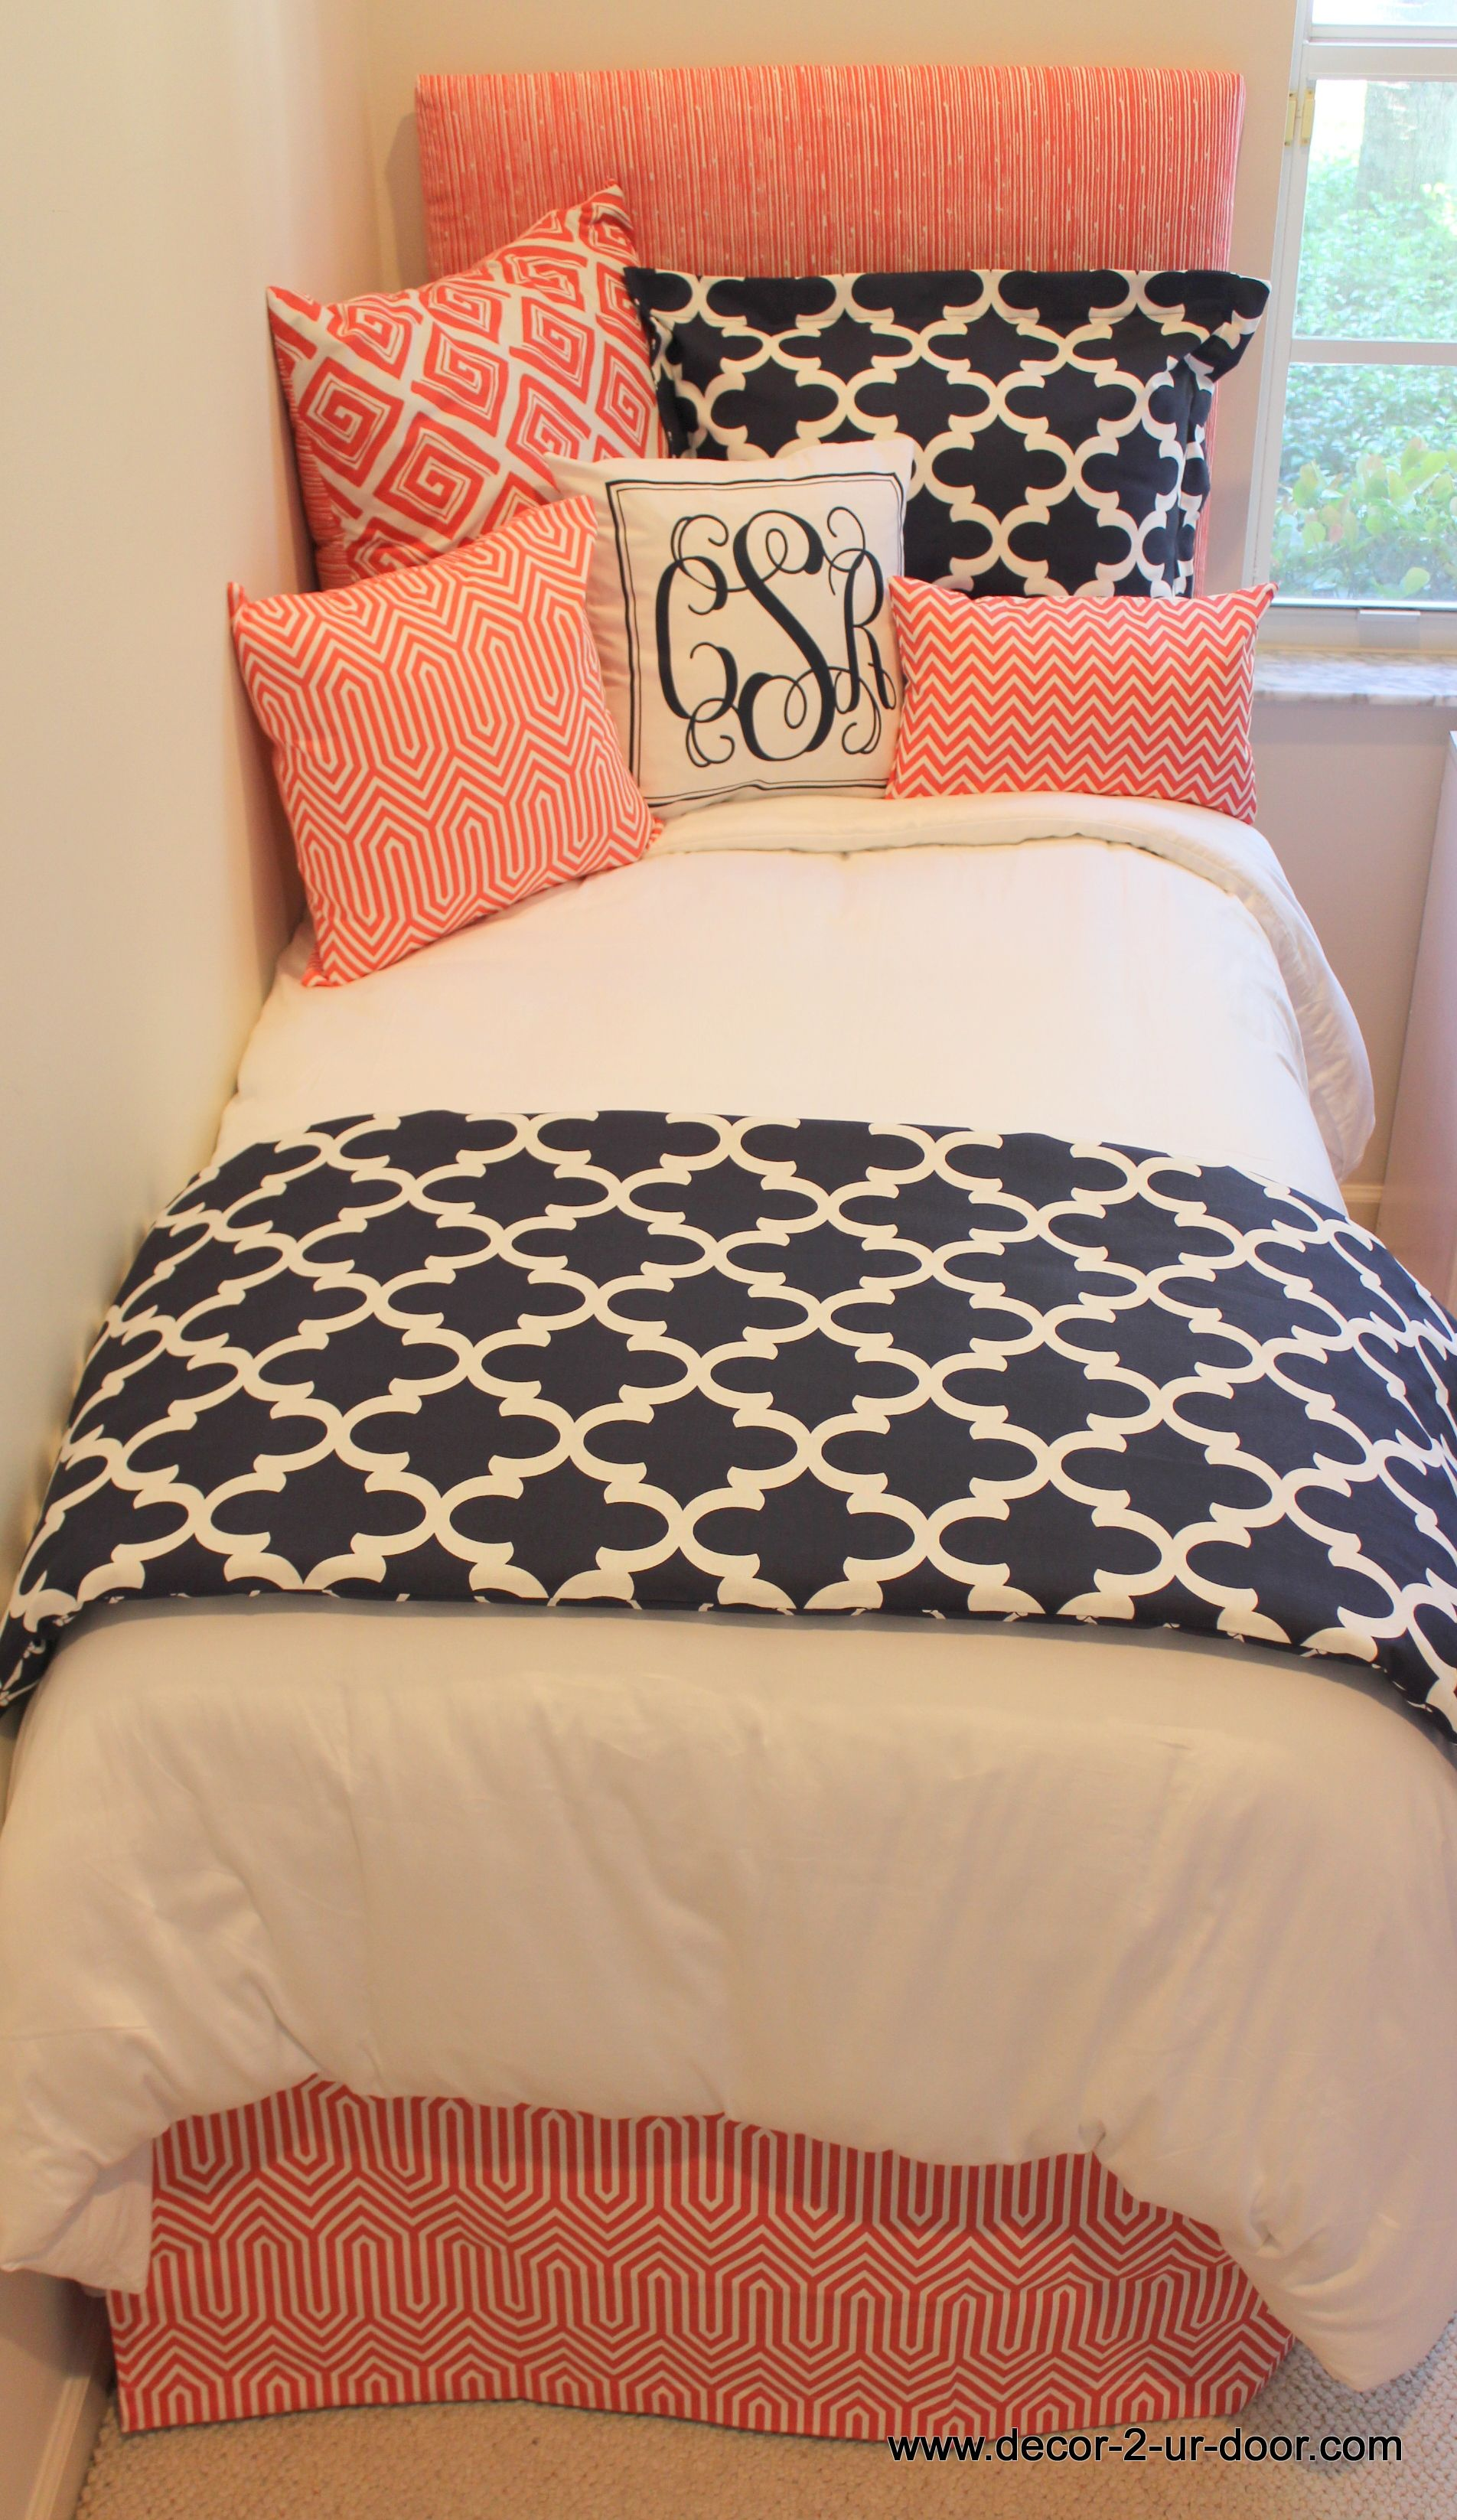 With a few simple changes, this preppy coral and navy color scheme ...